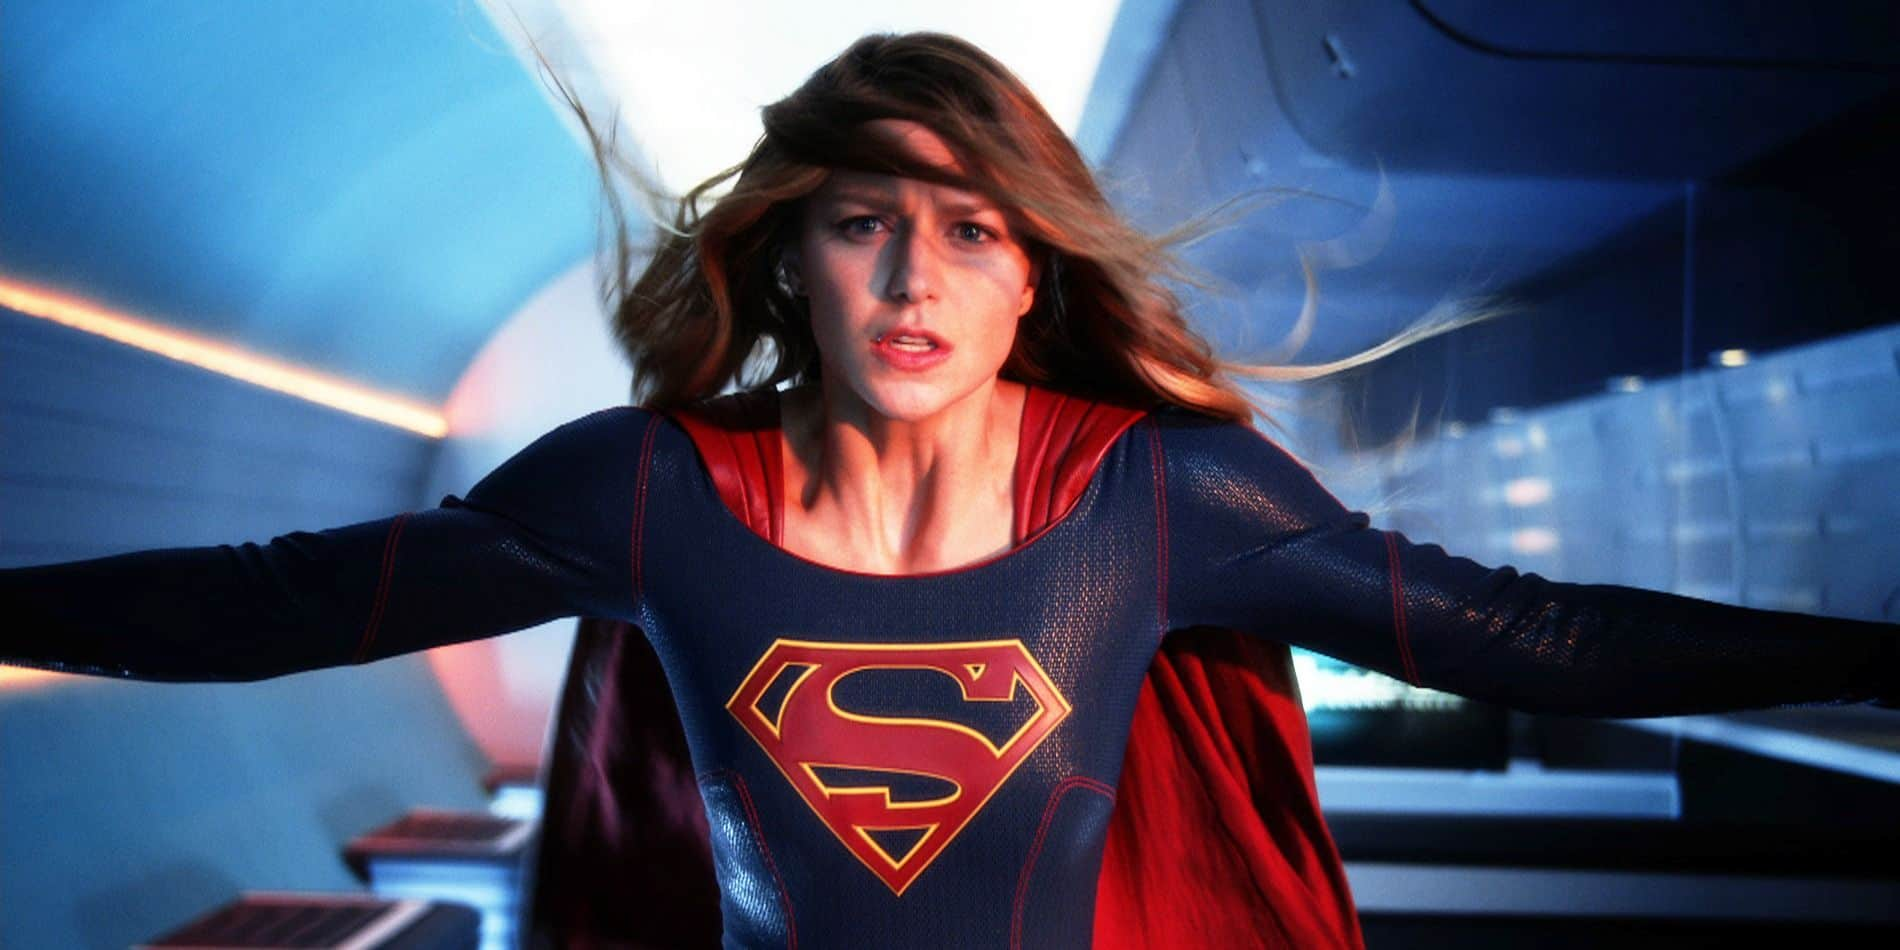 Supergirl Drops Skirt For New Season 5 Suit